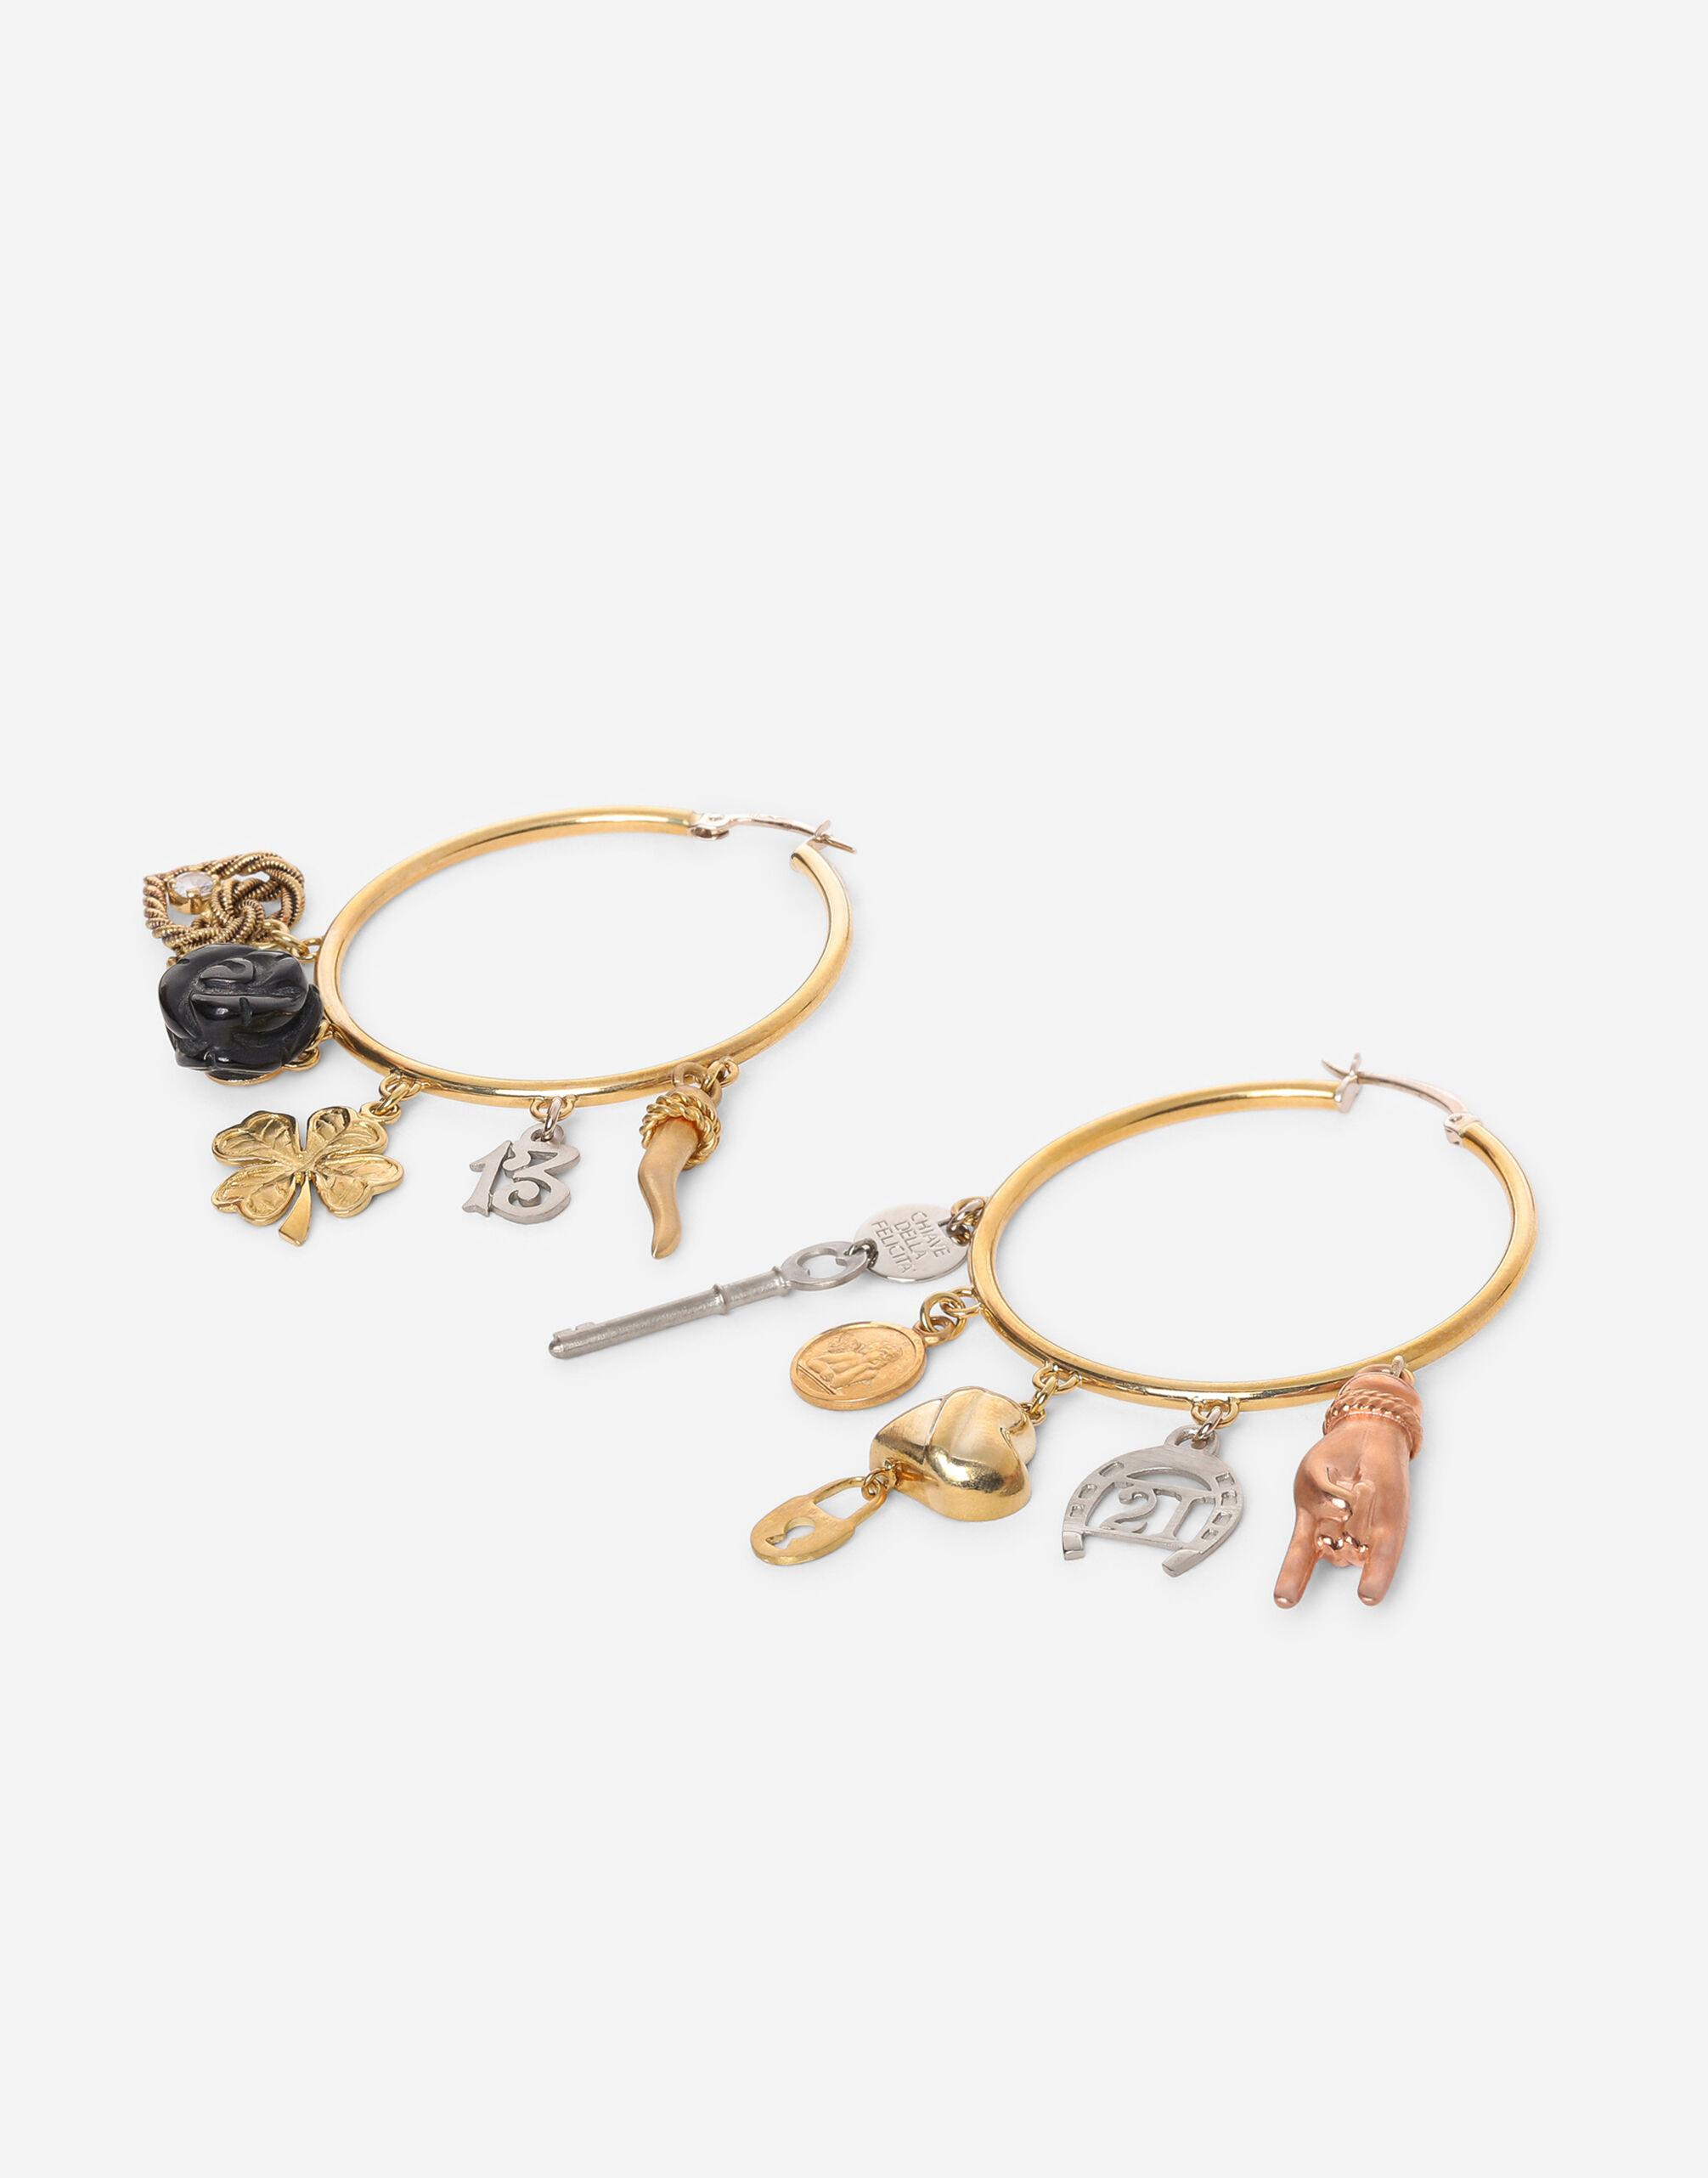 Good Luck earrings in 18kt yellow, white and red gold with lucky charms 1